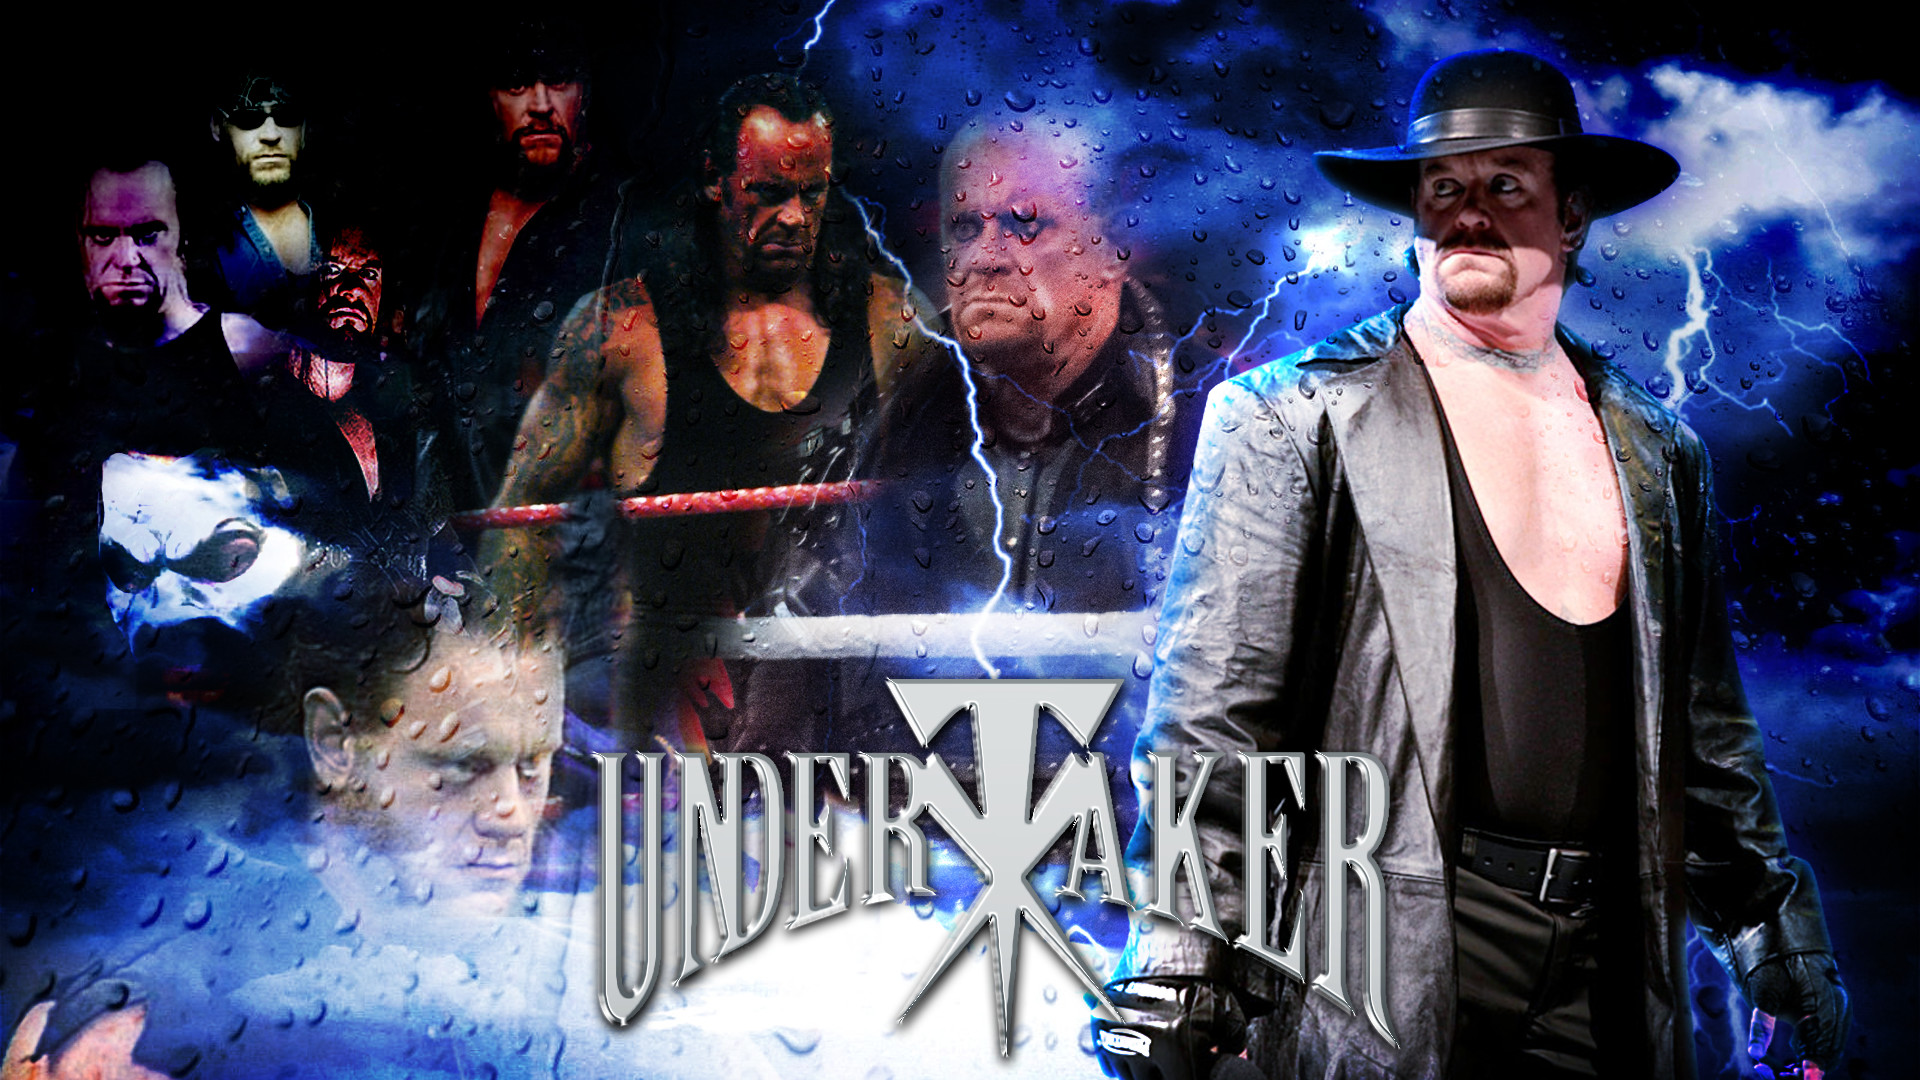 hd wallpapers of undertaker